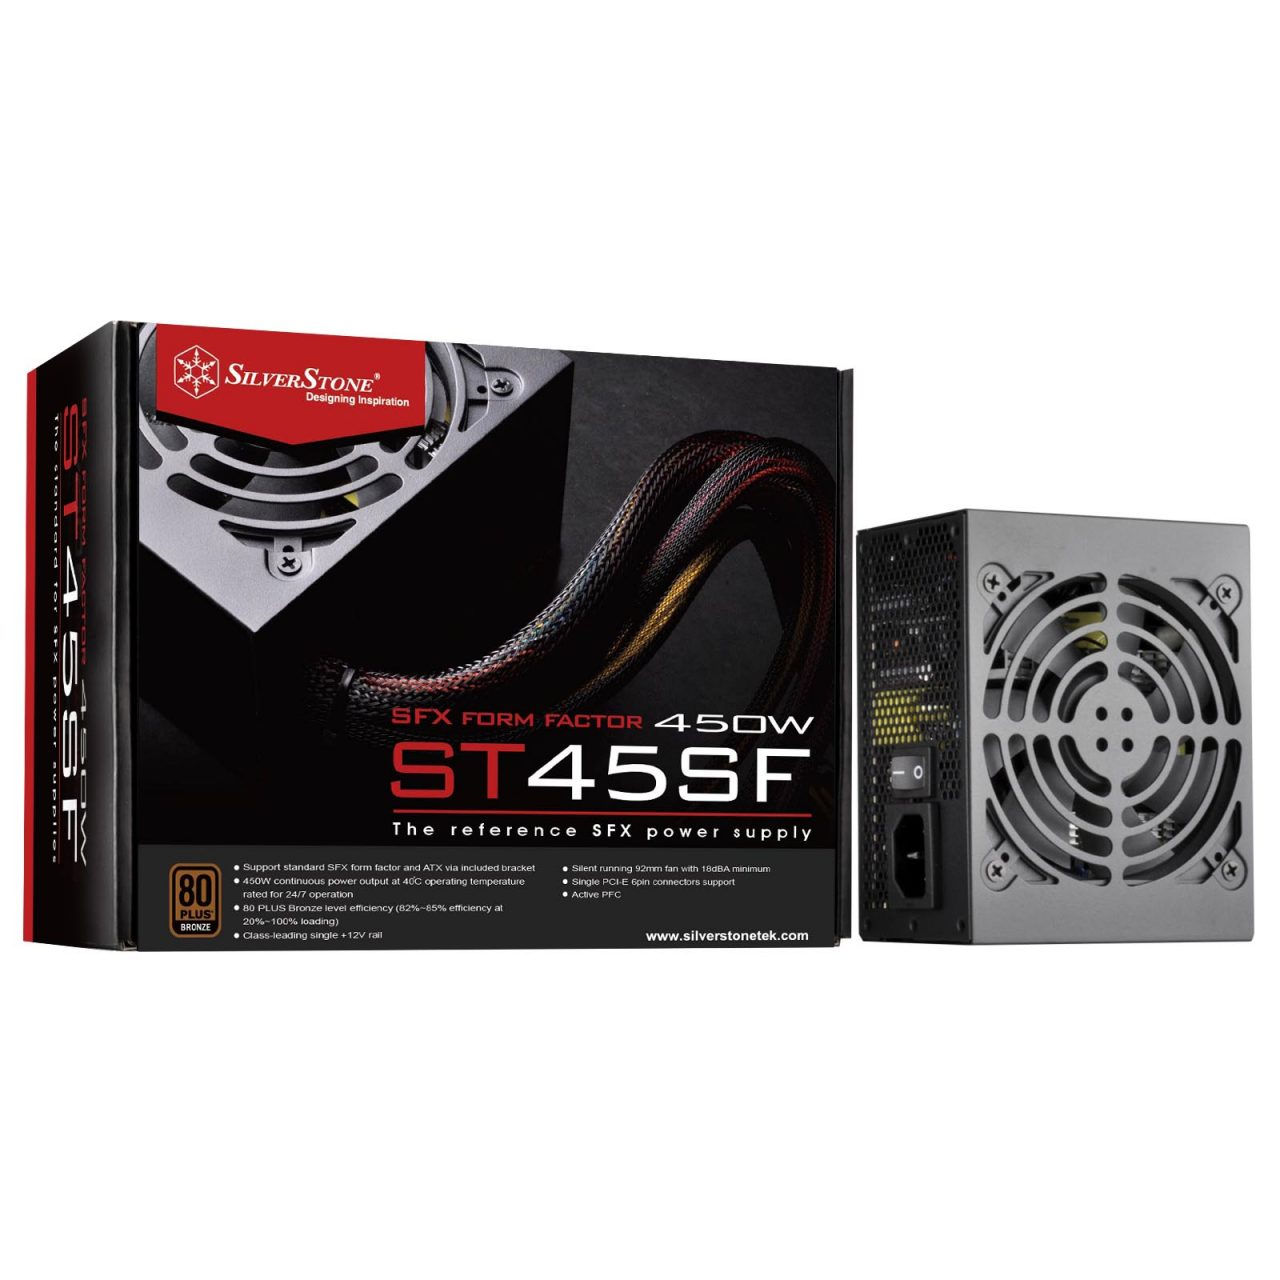 st45sf-v3-package-2